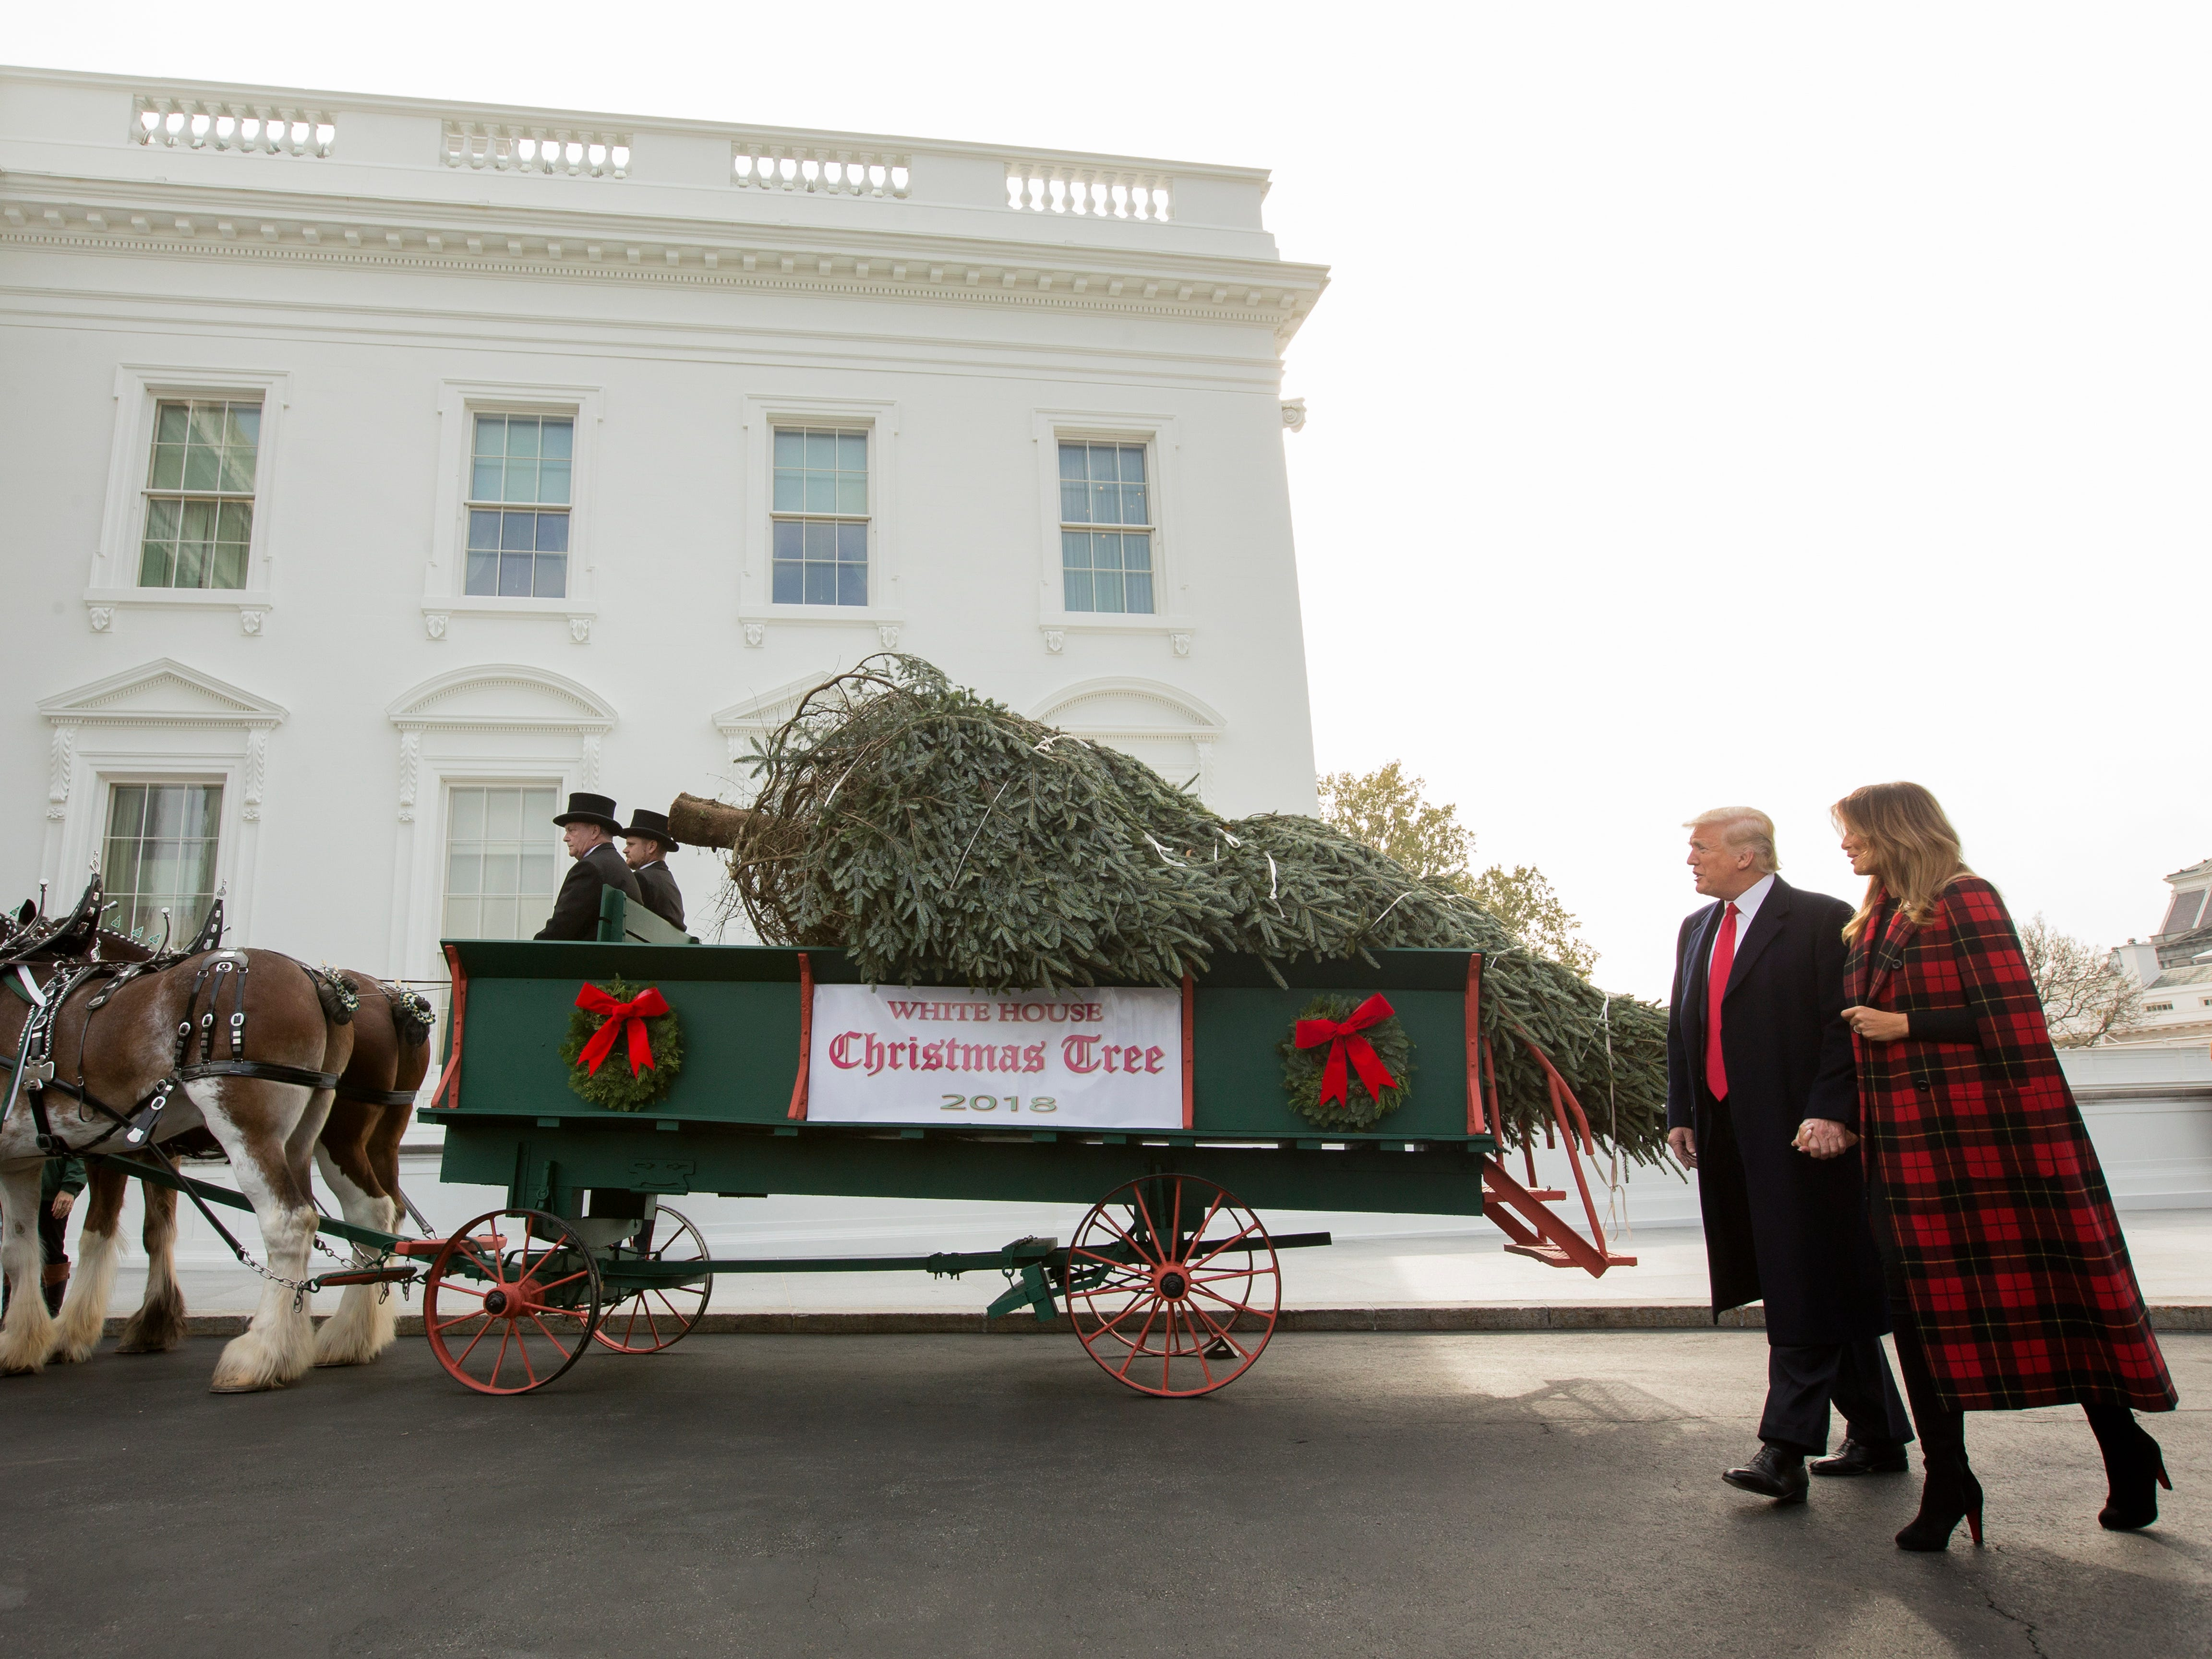 President Donald Trump and first lady Melania Trump participate in the presentation of the official White House Christmas Tree on Nov. 19, 2018.